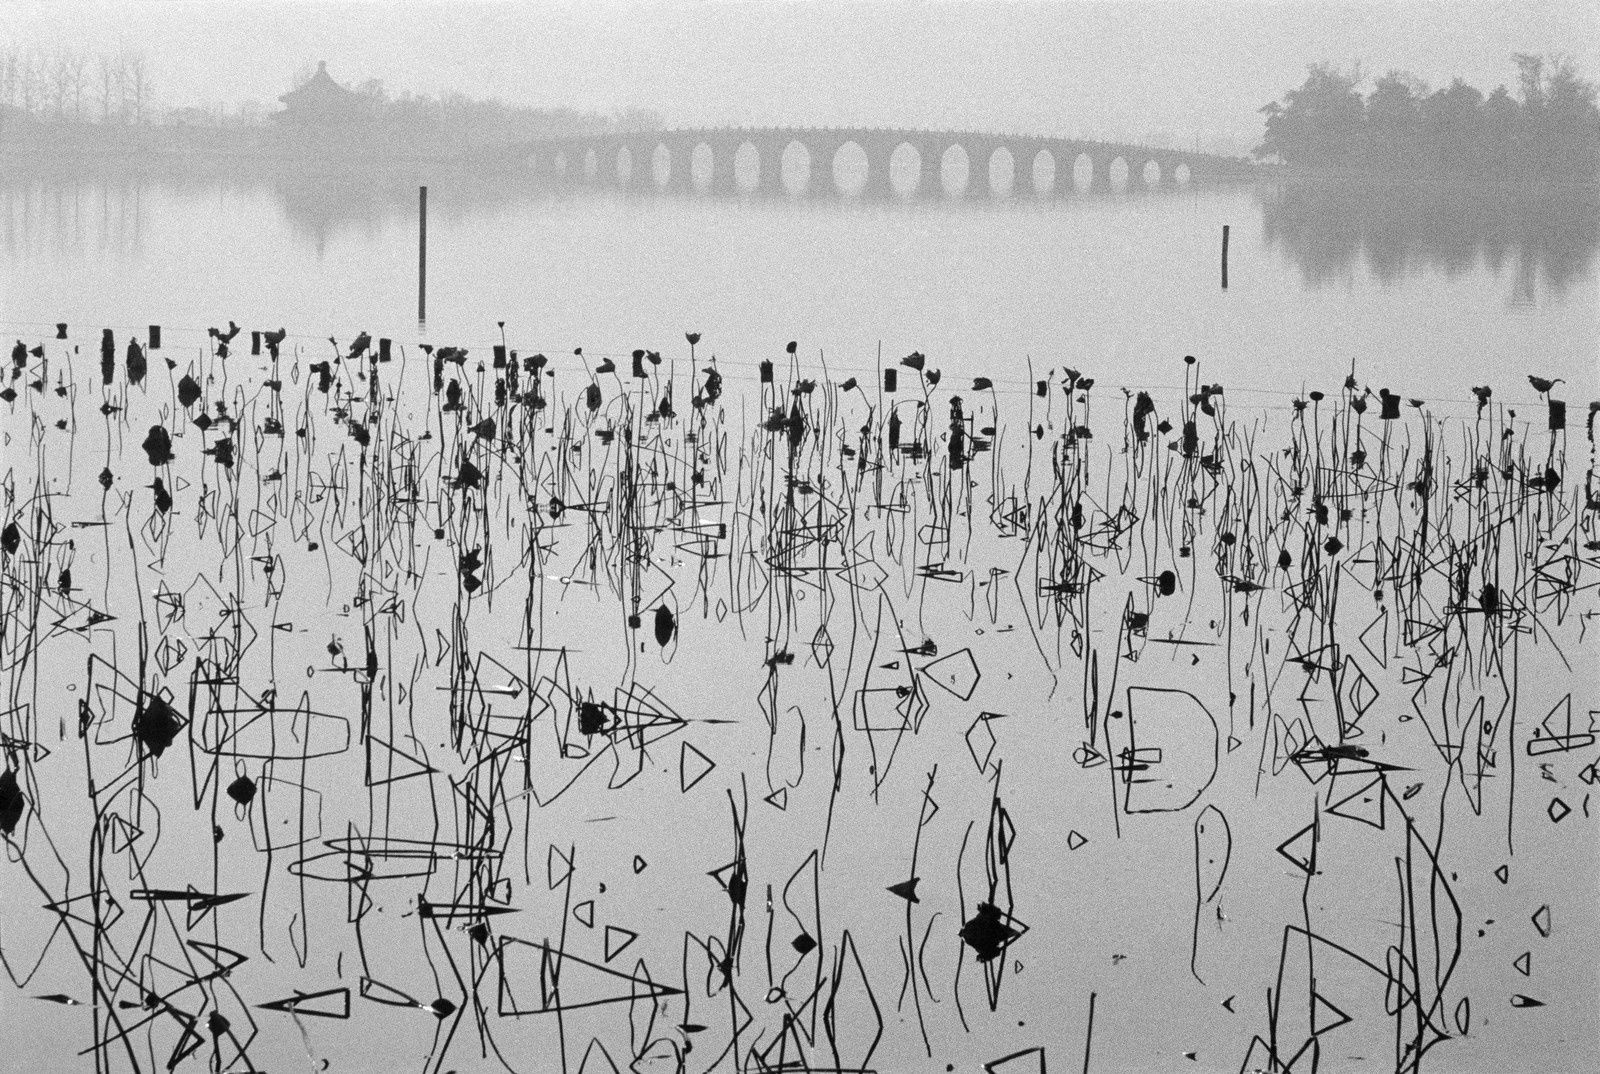 Kunming Lake, Beijing, China, 1964 - Source: www.hku.hk